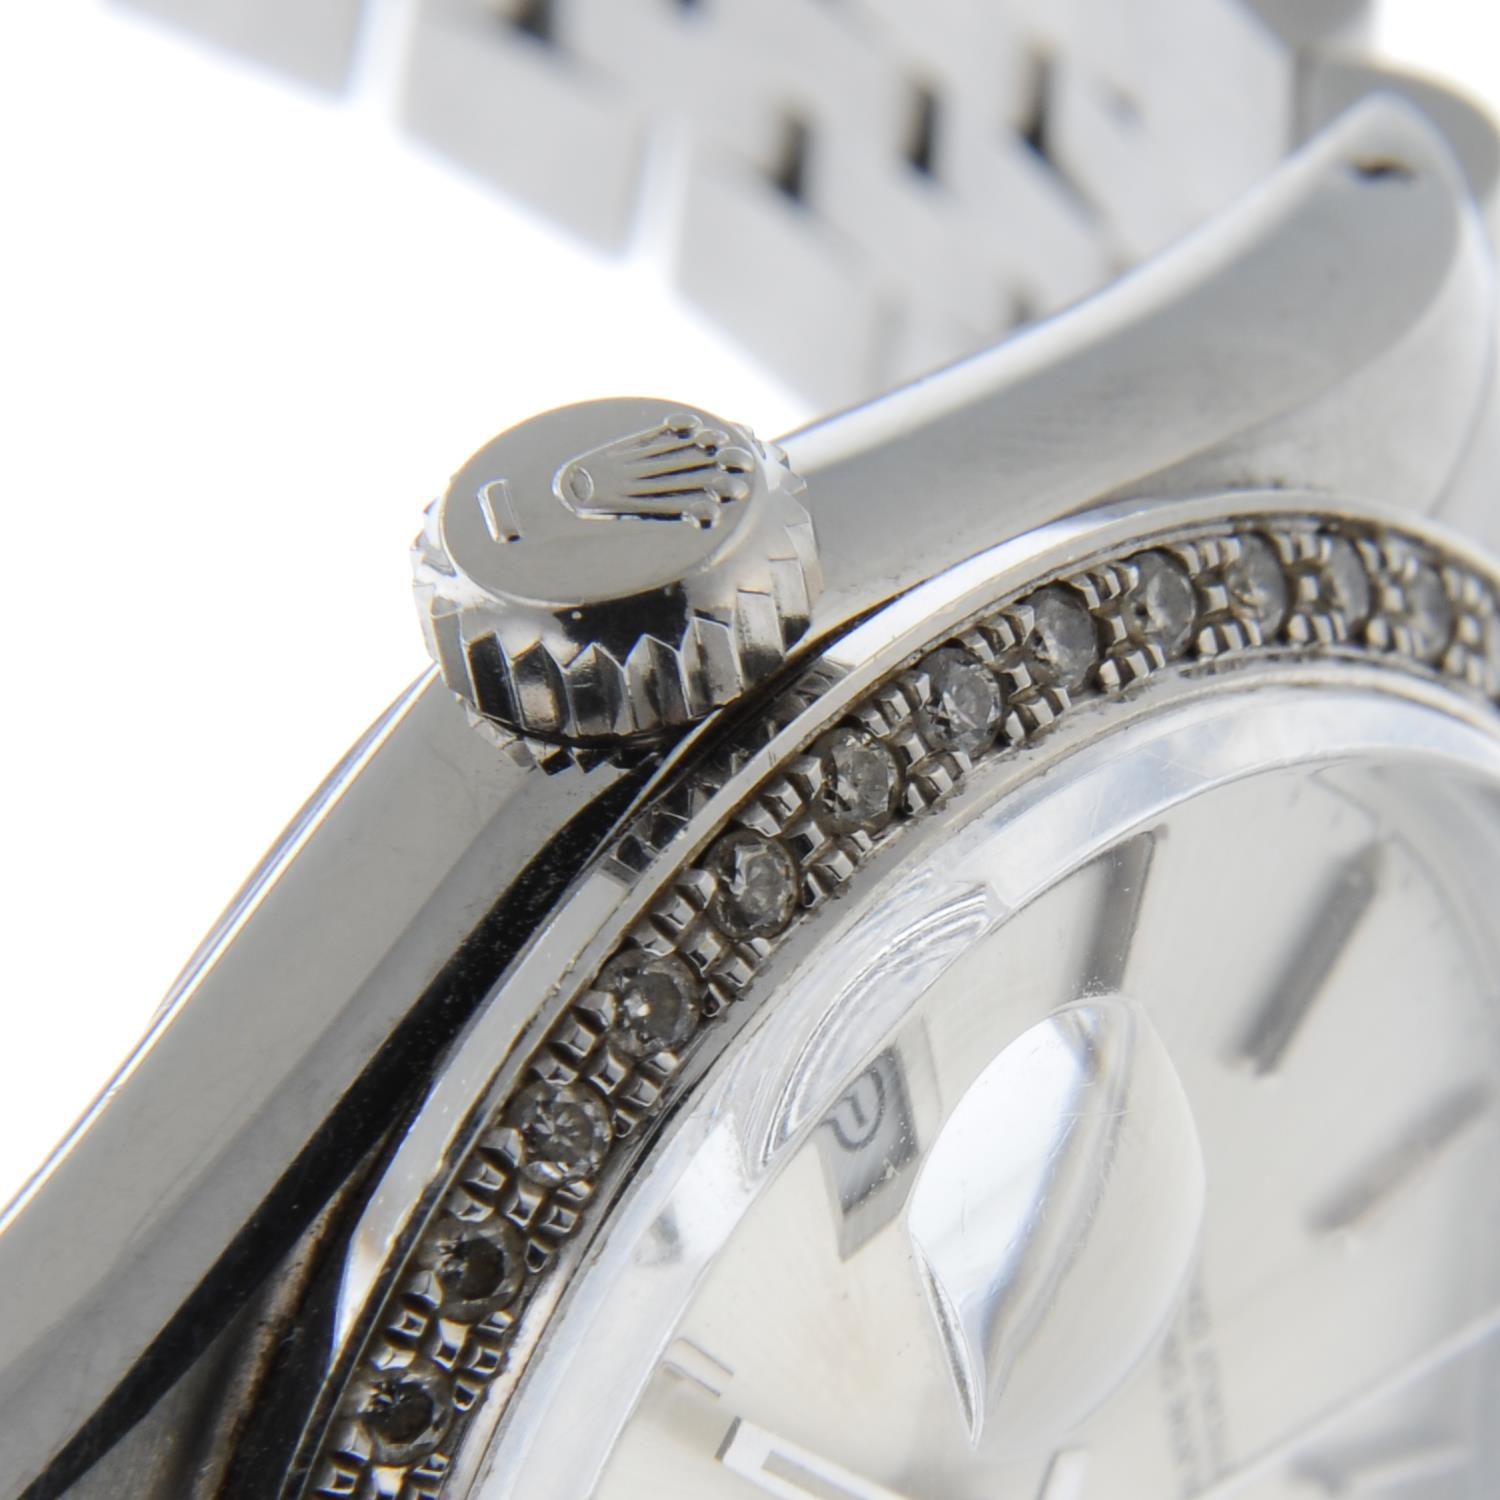 ROLEX - an Oyster Perpetual Datejust bracelet watch. - Image 4 of 5